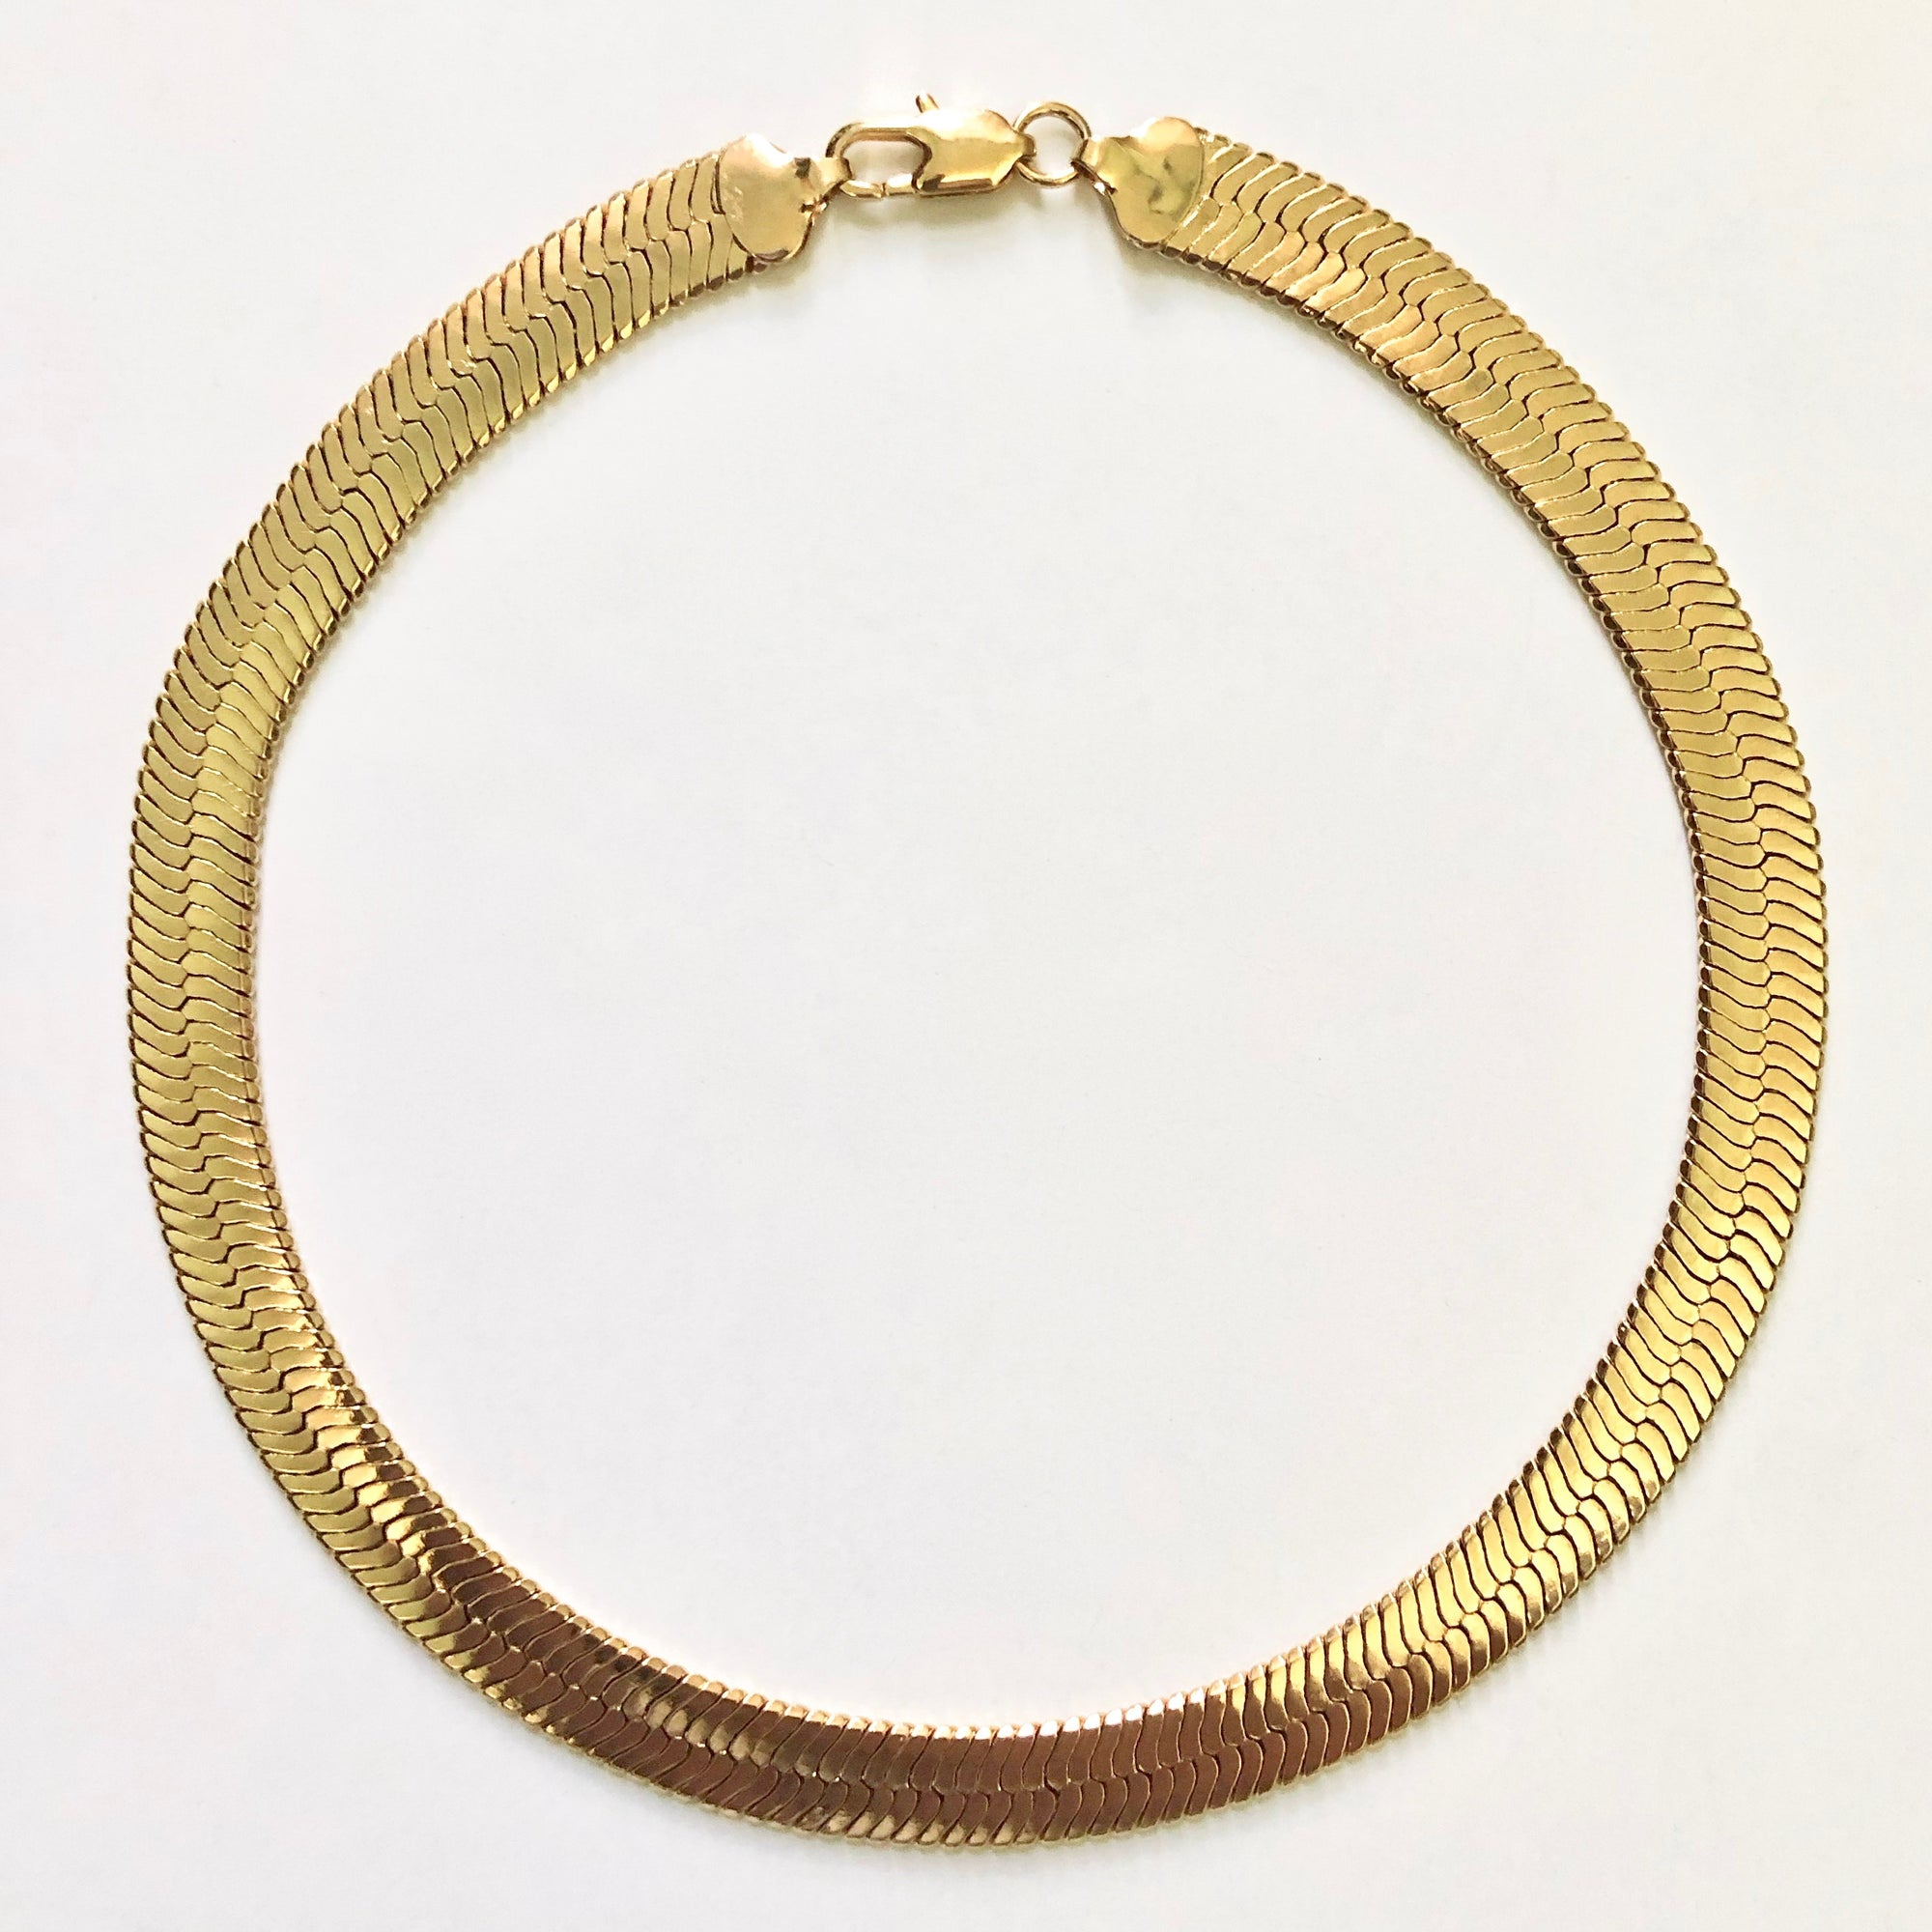 HAILEY THICK HERRINGBONE CHAIN NECKLACE, SHORT - GOLD